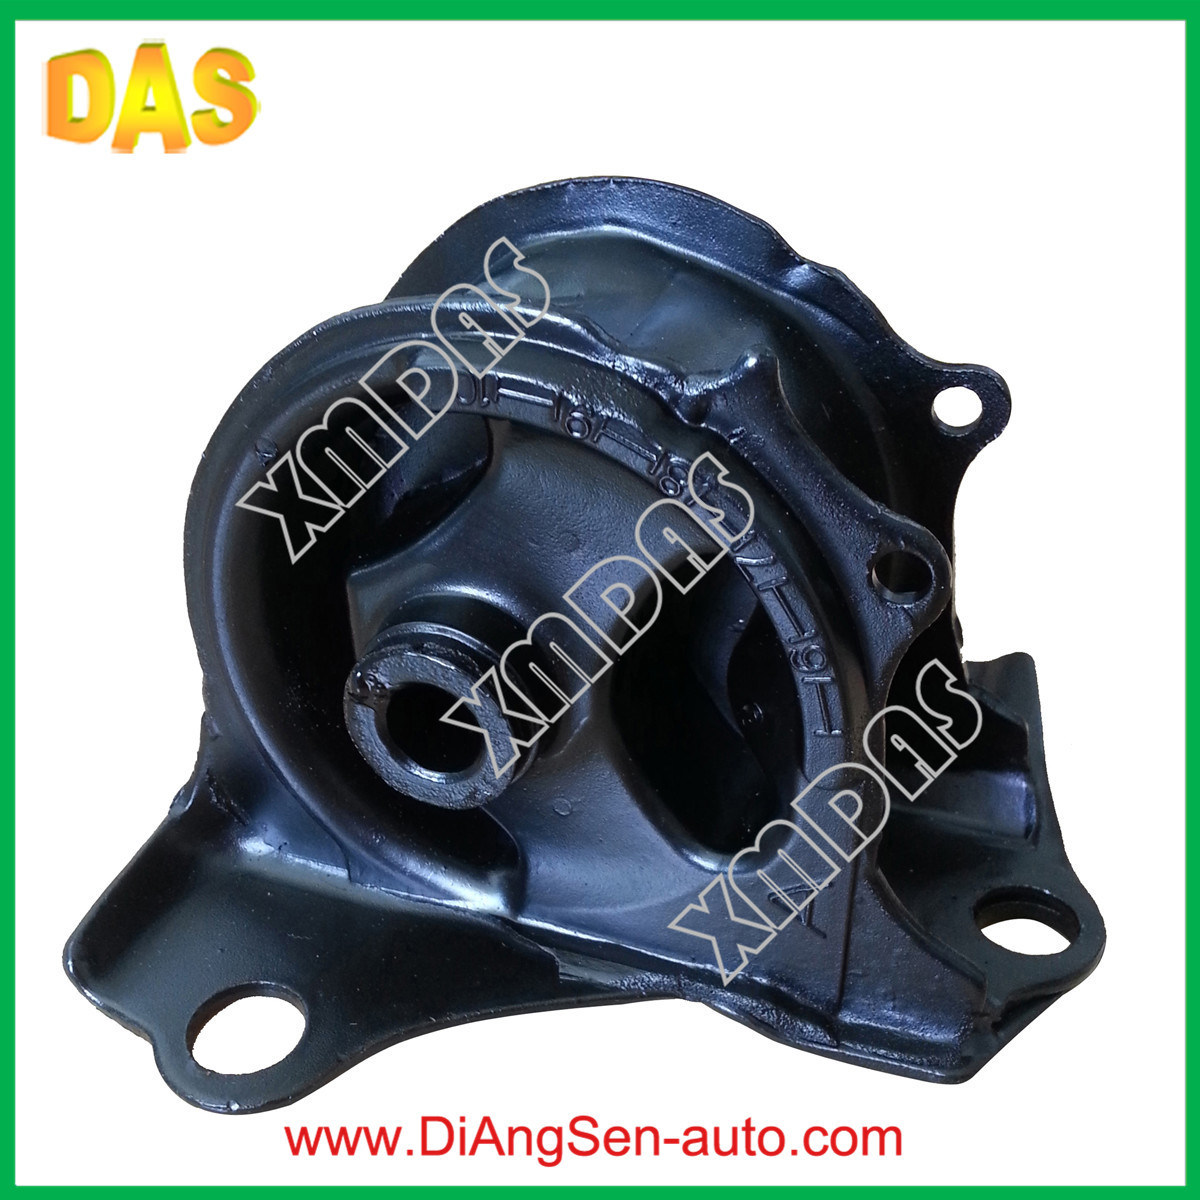 China Auto Rubber Spare Parts Engine Mounting For Honda Crv Civic 2001 Discount Factory Oem And 50820 Sr3 000 50805 S04